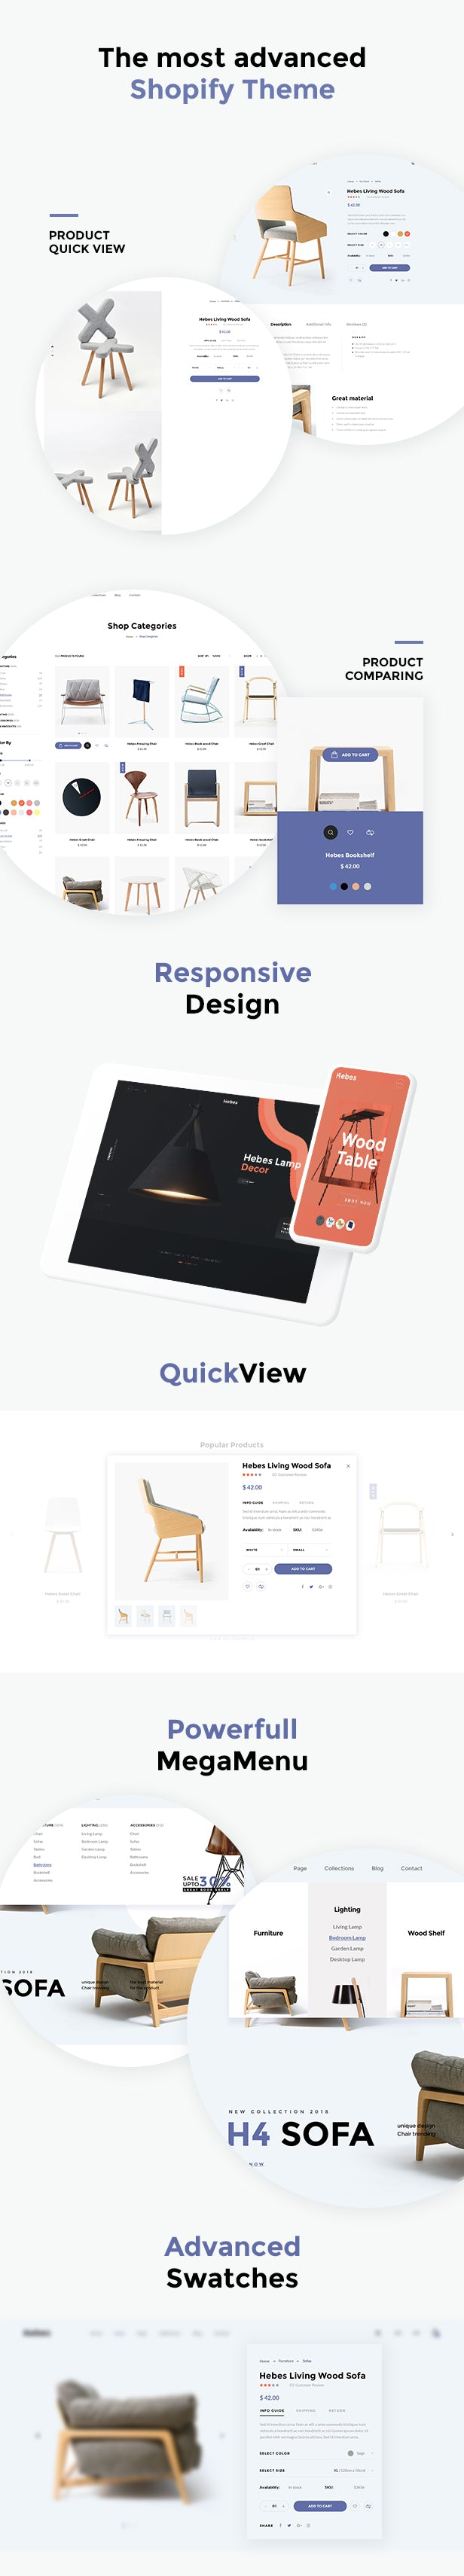 hebes shopify theme